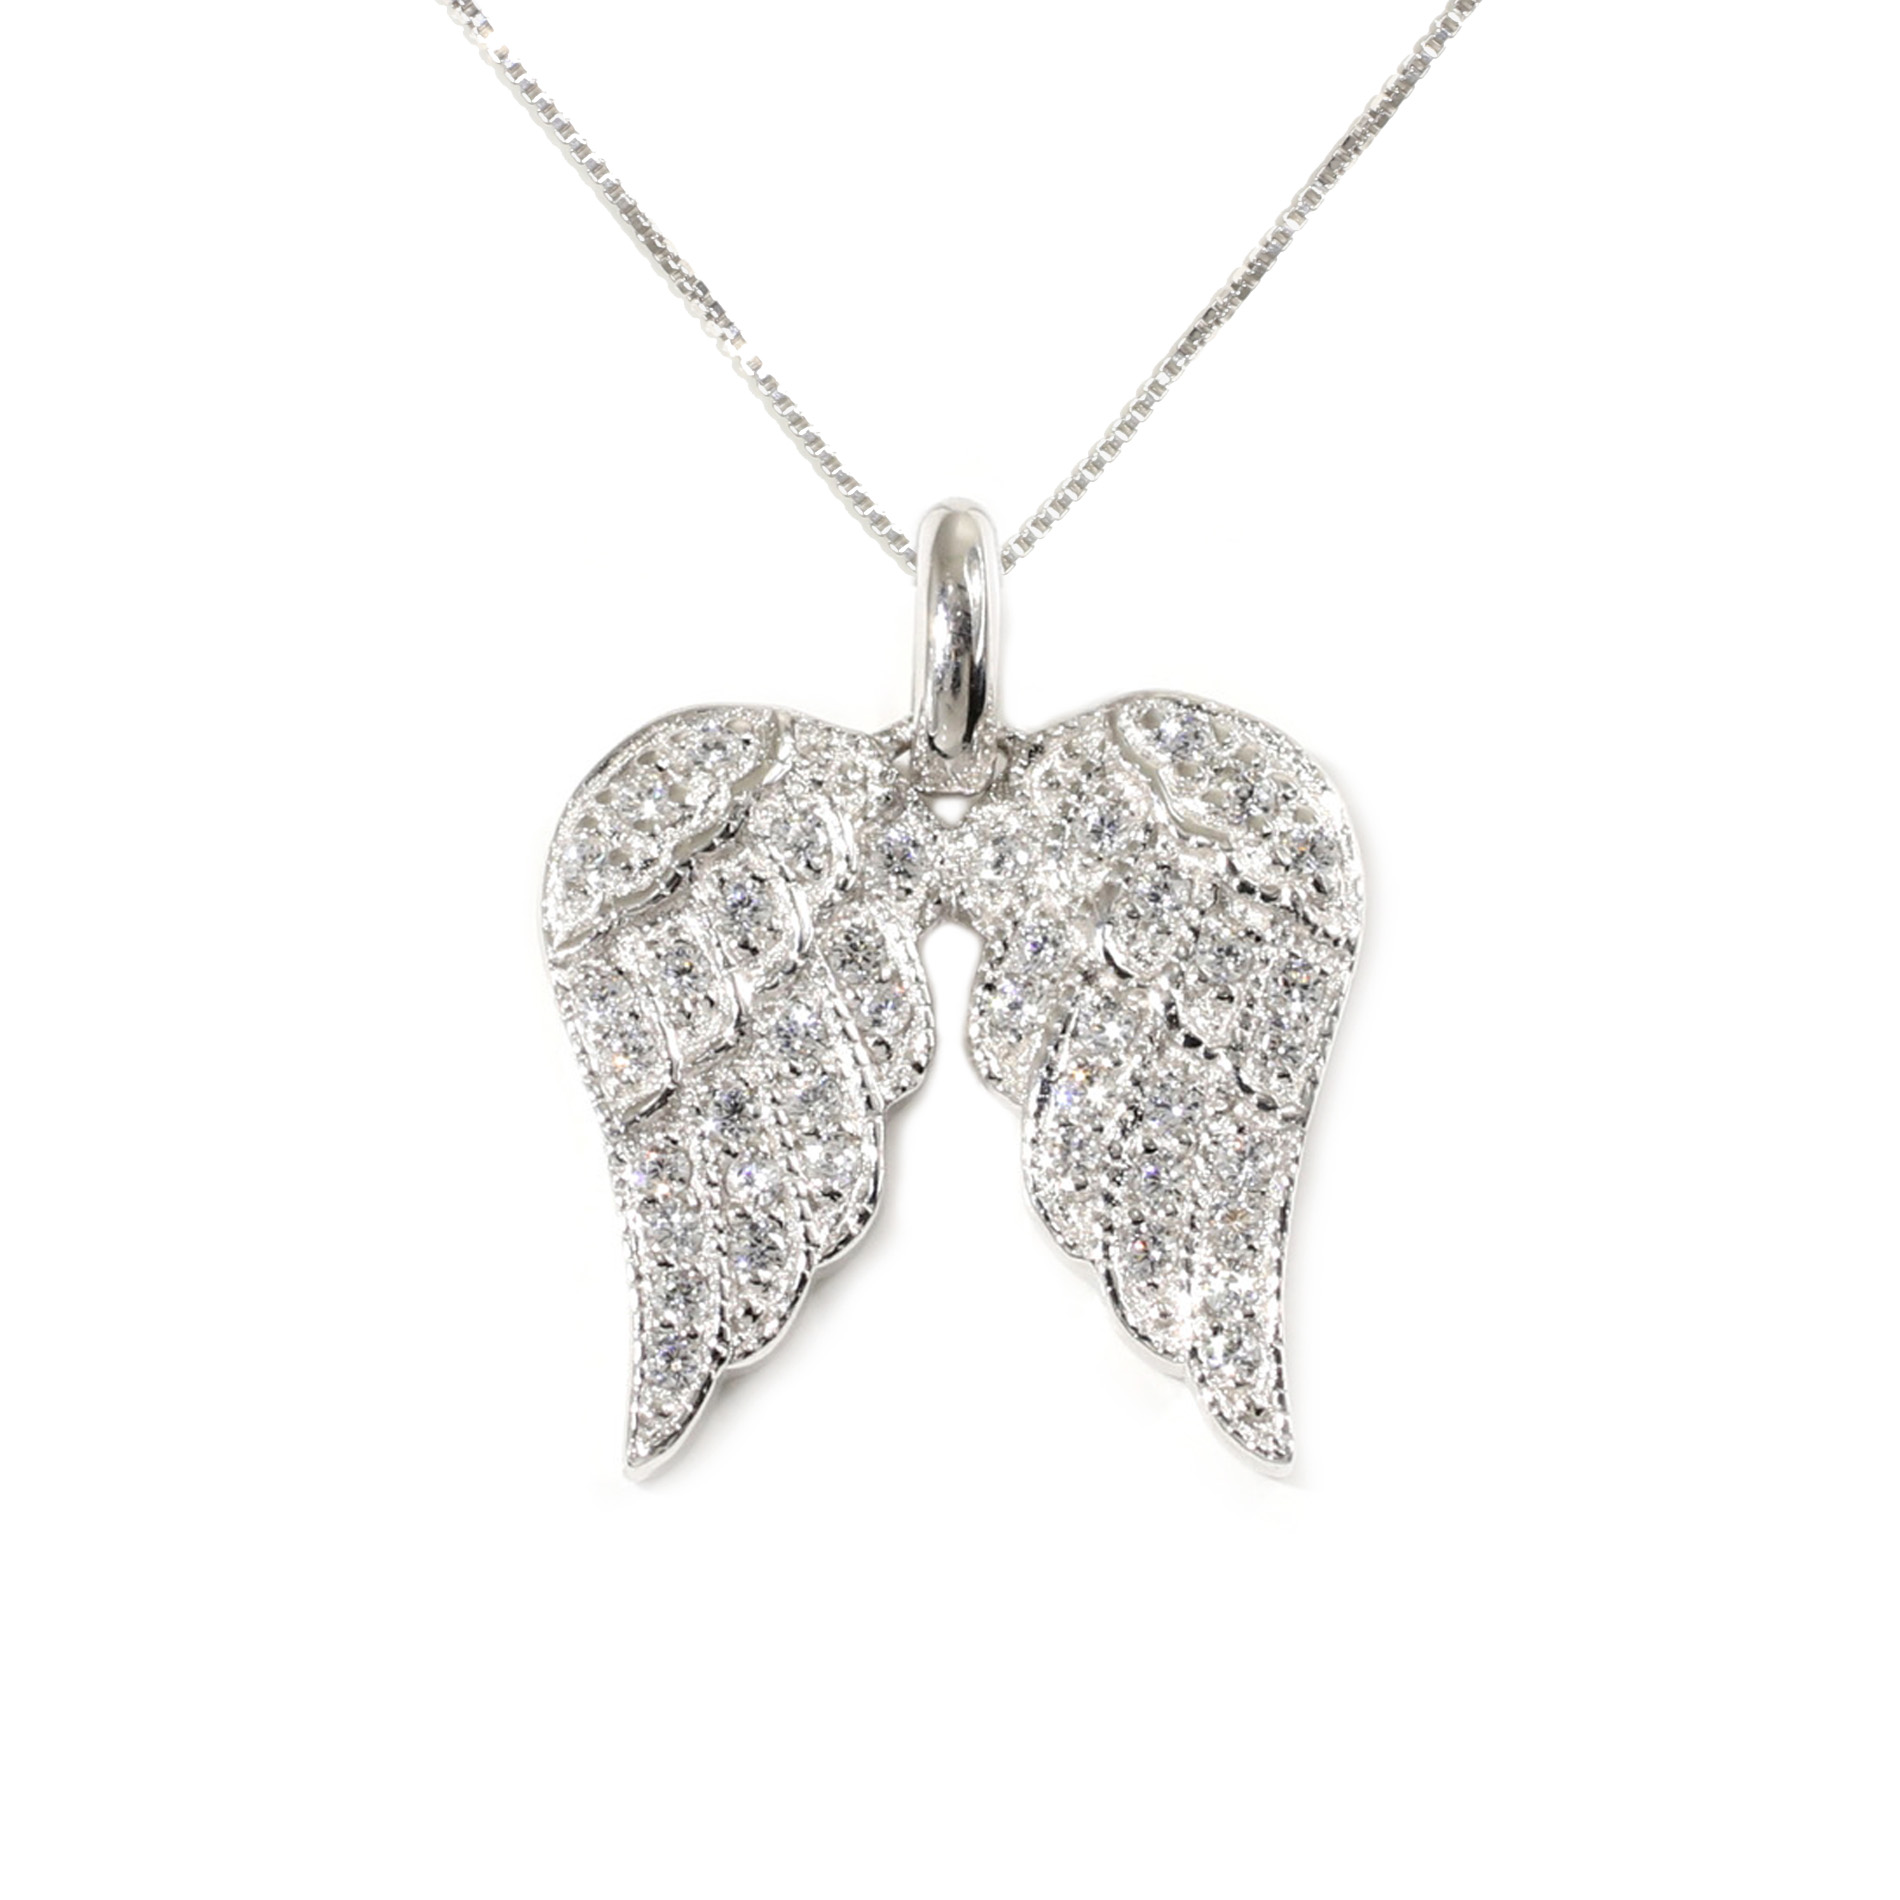 free product necklace over on wings watches sterling pave silver cubic jewelry overstock angel shipping zirconia cgc cz pendant orders